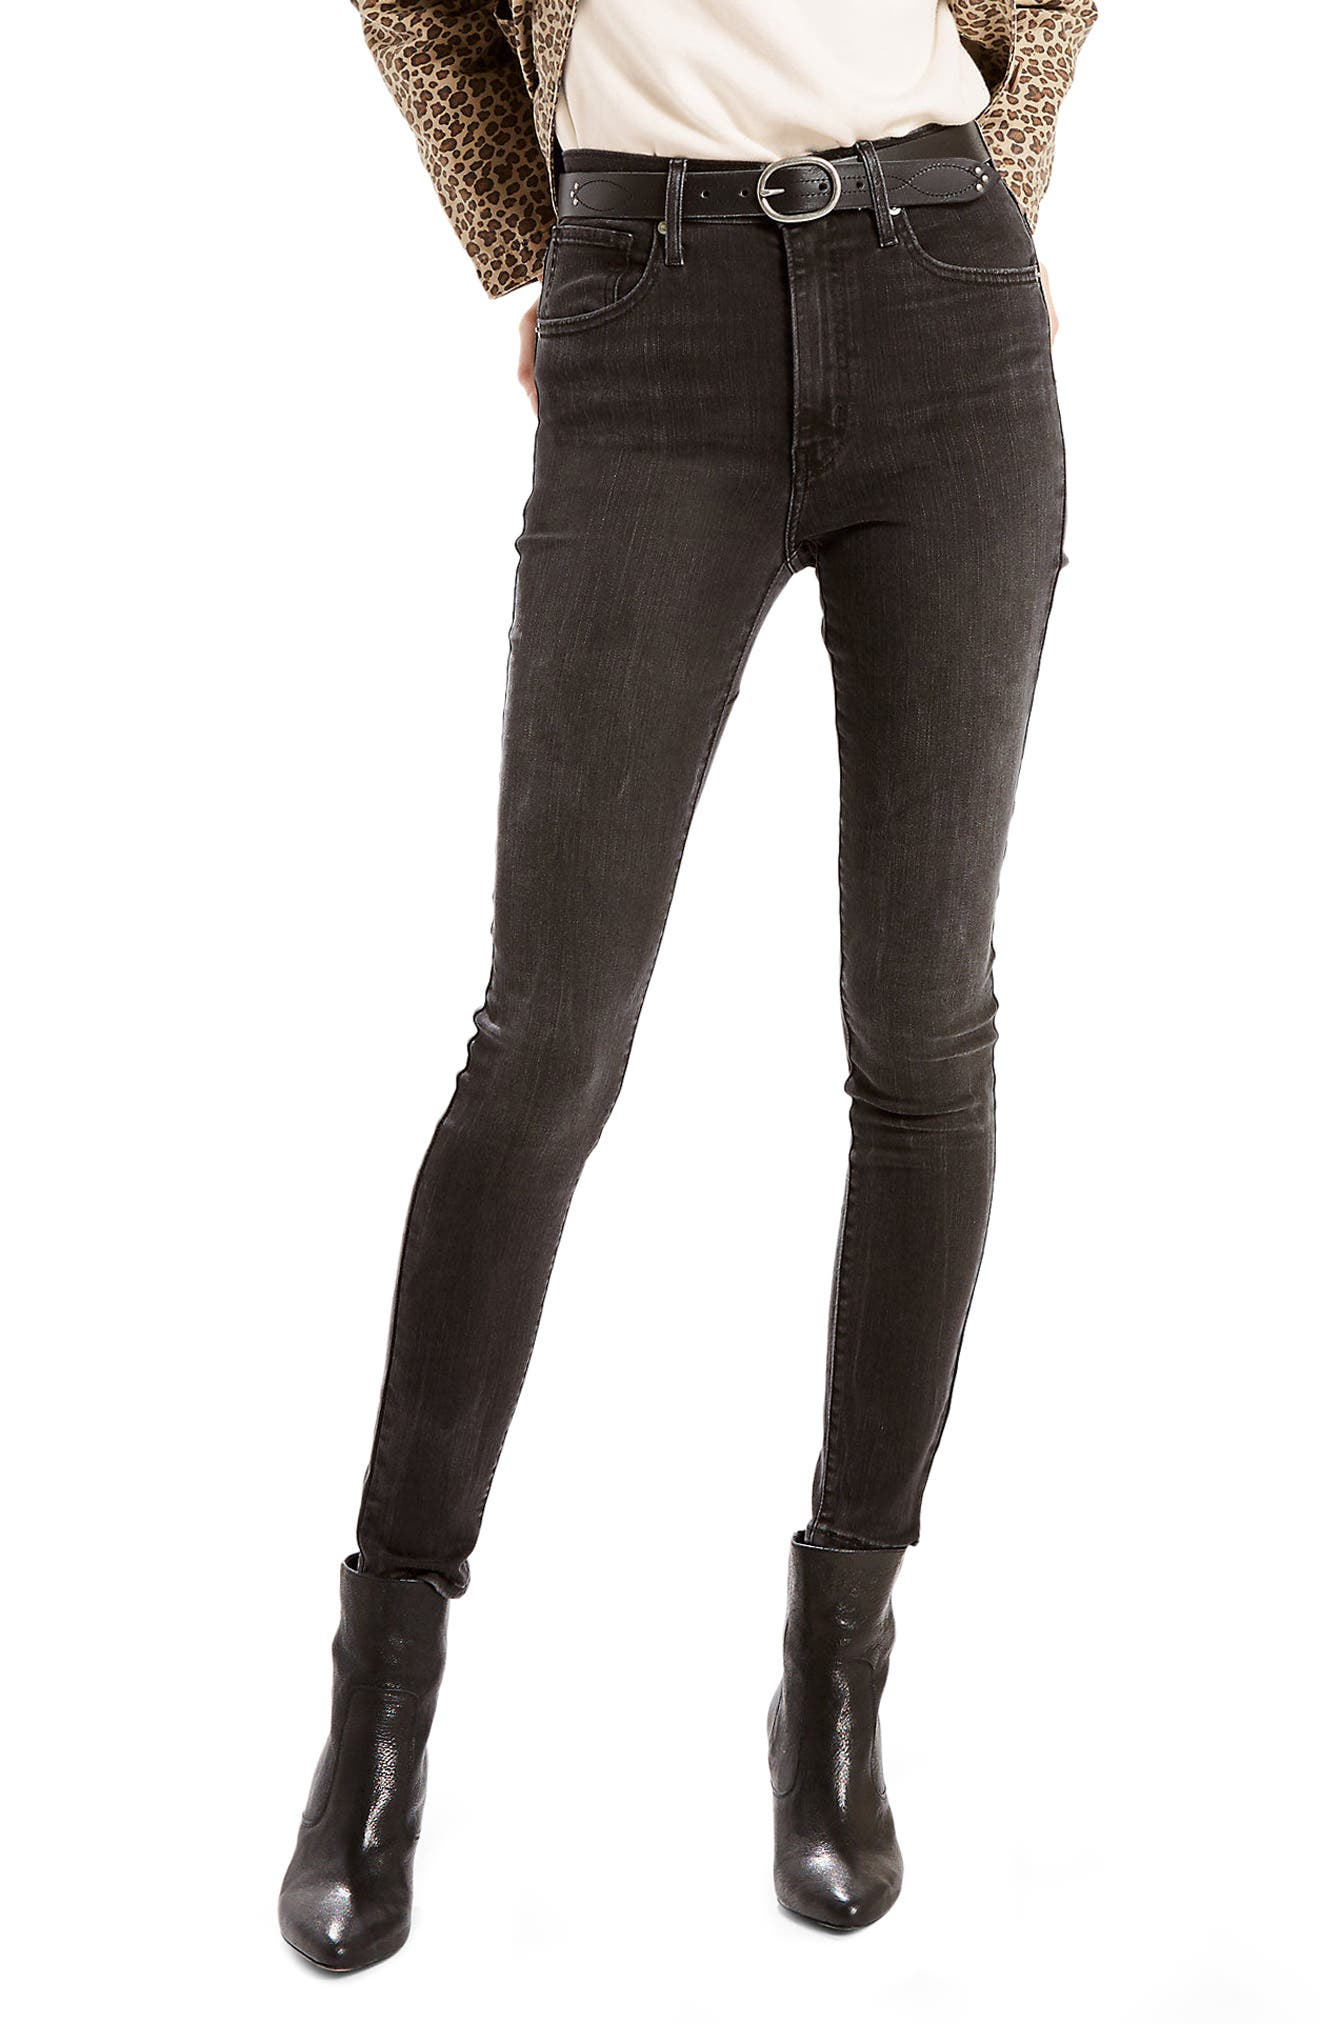 Main Image - Levi's® Mile High High Waist Super Skinny Jeans (SF Nights)